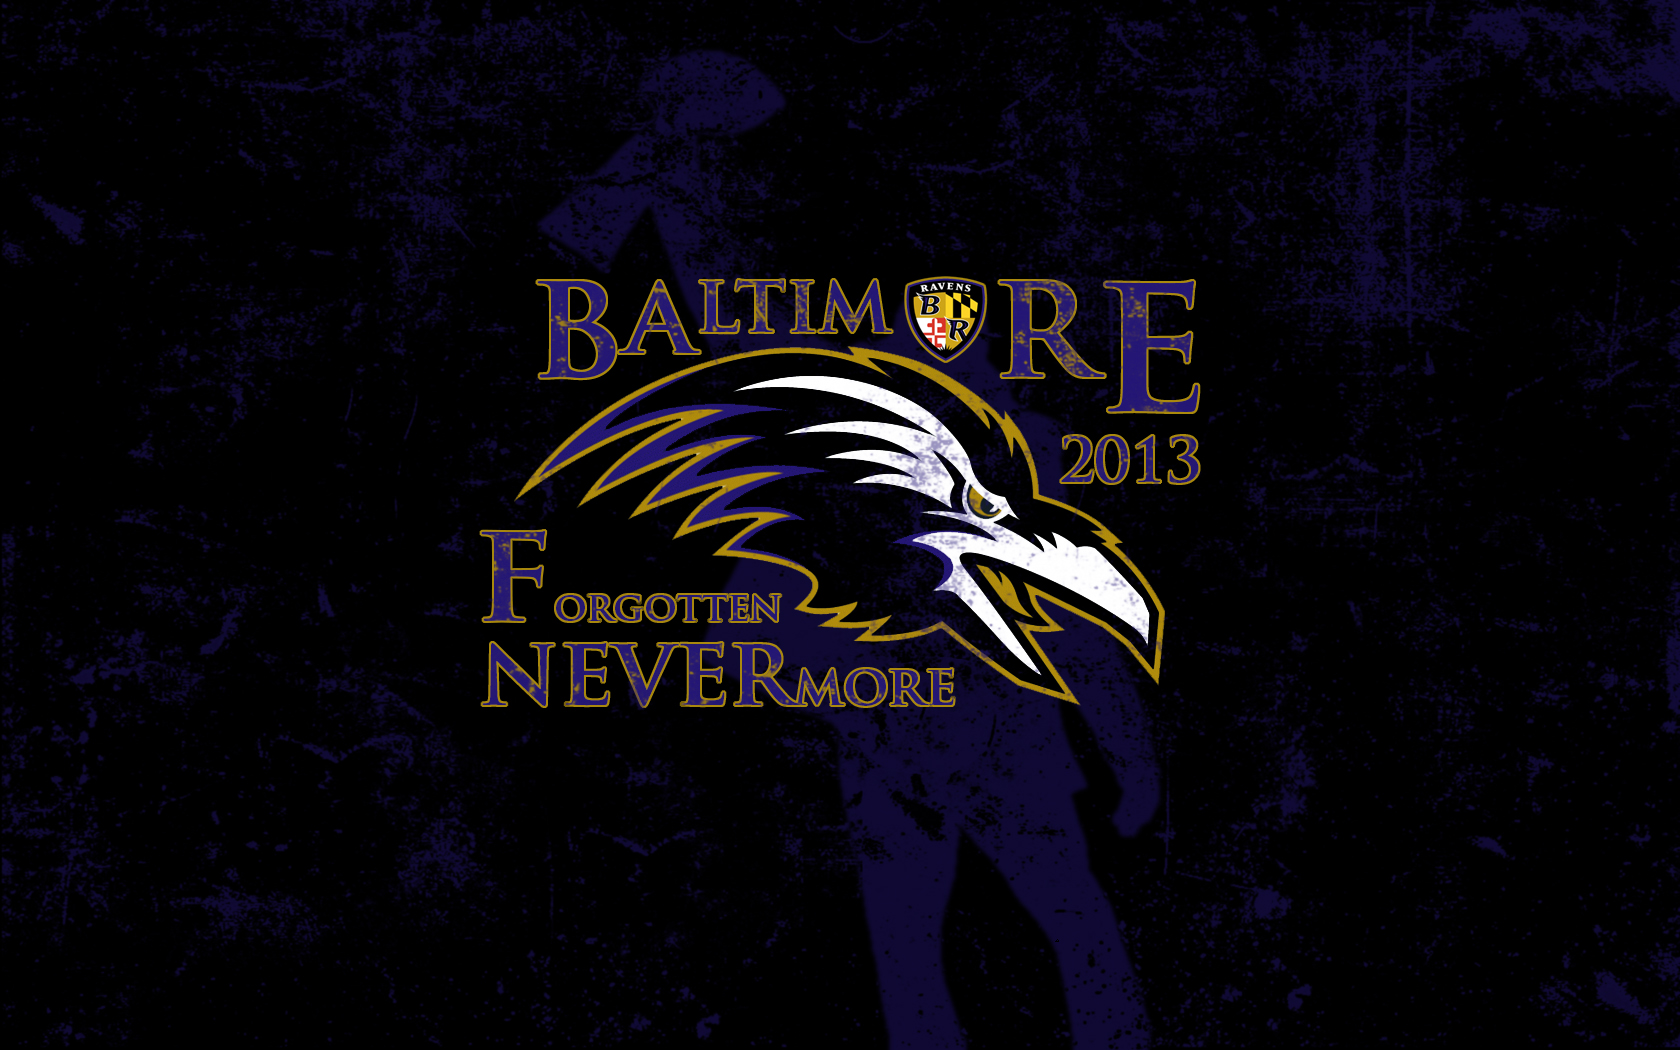 Wallpapers Hd Baltimore Ravens 960 X 854 141 Kb Jpeg HD Wallpapers 1680x1050